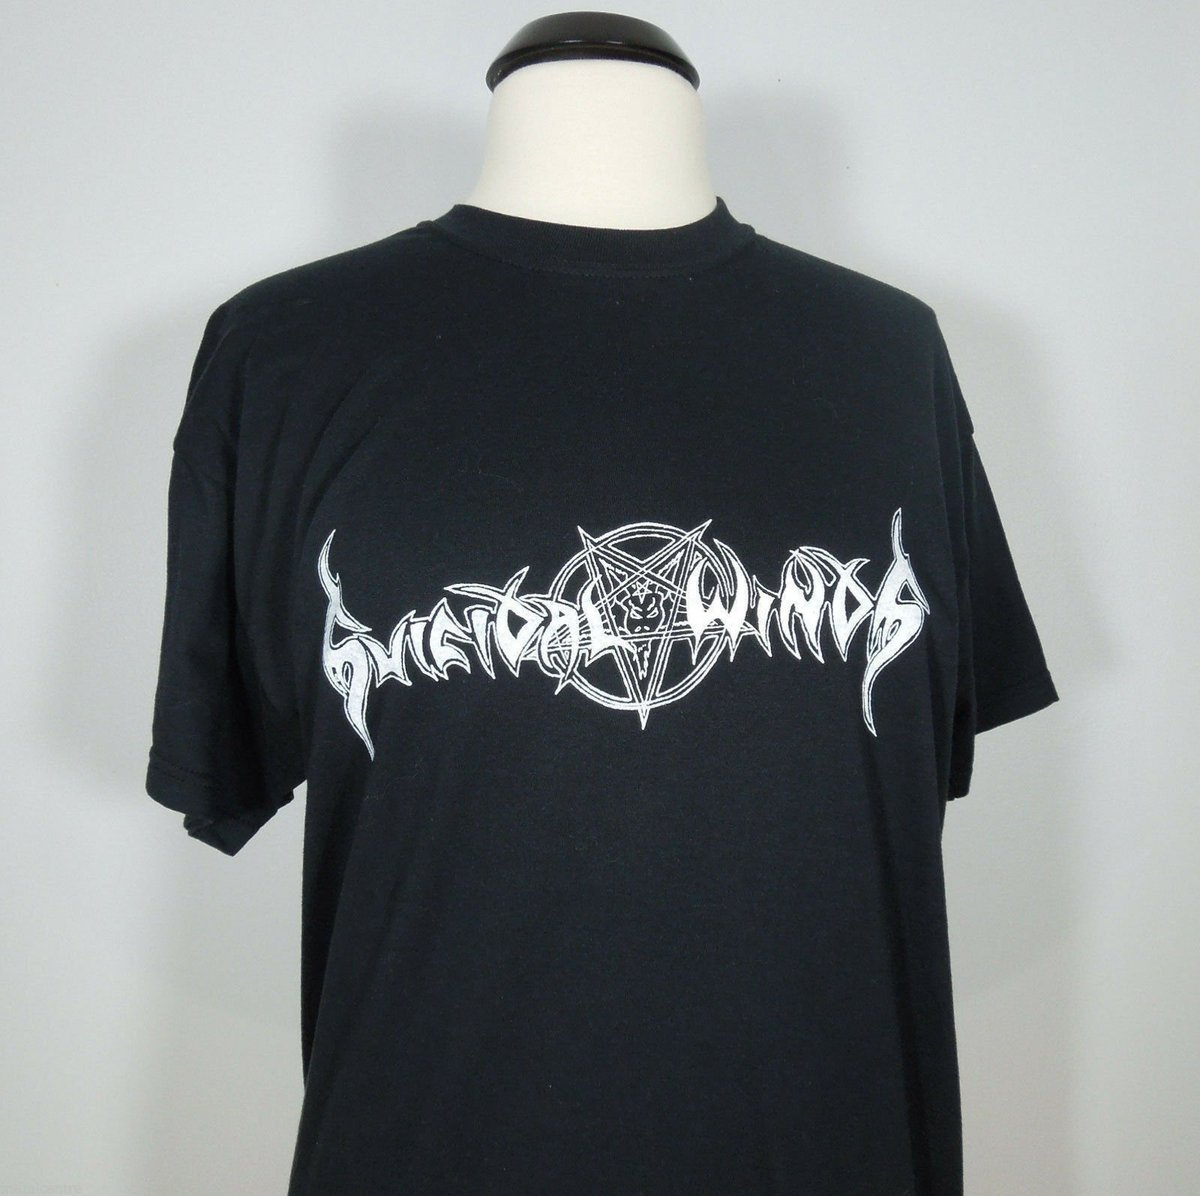 Check out https://ebay.to/2JP6wGN  SUICIDAL WINDS Band Logo Black T-Shirt (No Colours Records) Men's (NEW)   http://www.axblade.com    #SUICIDALWINDS #Band #Sweden #Logo #Black #TShirt #NoColoursRecords #Mens #NEW #ThrashMetal #BlackMetal #AxBlade #VersalCentre #CDs #Patchespic.twitter.com/BcGgeSx0PE